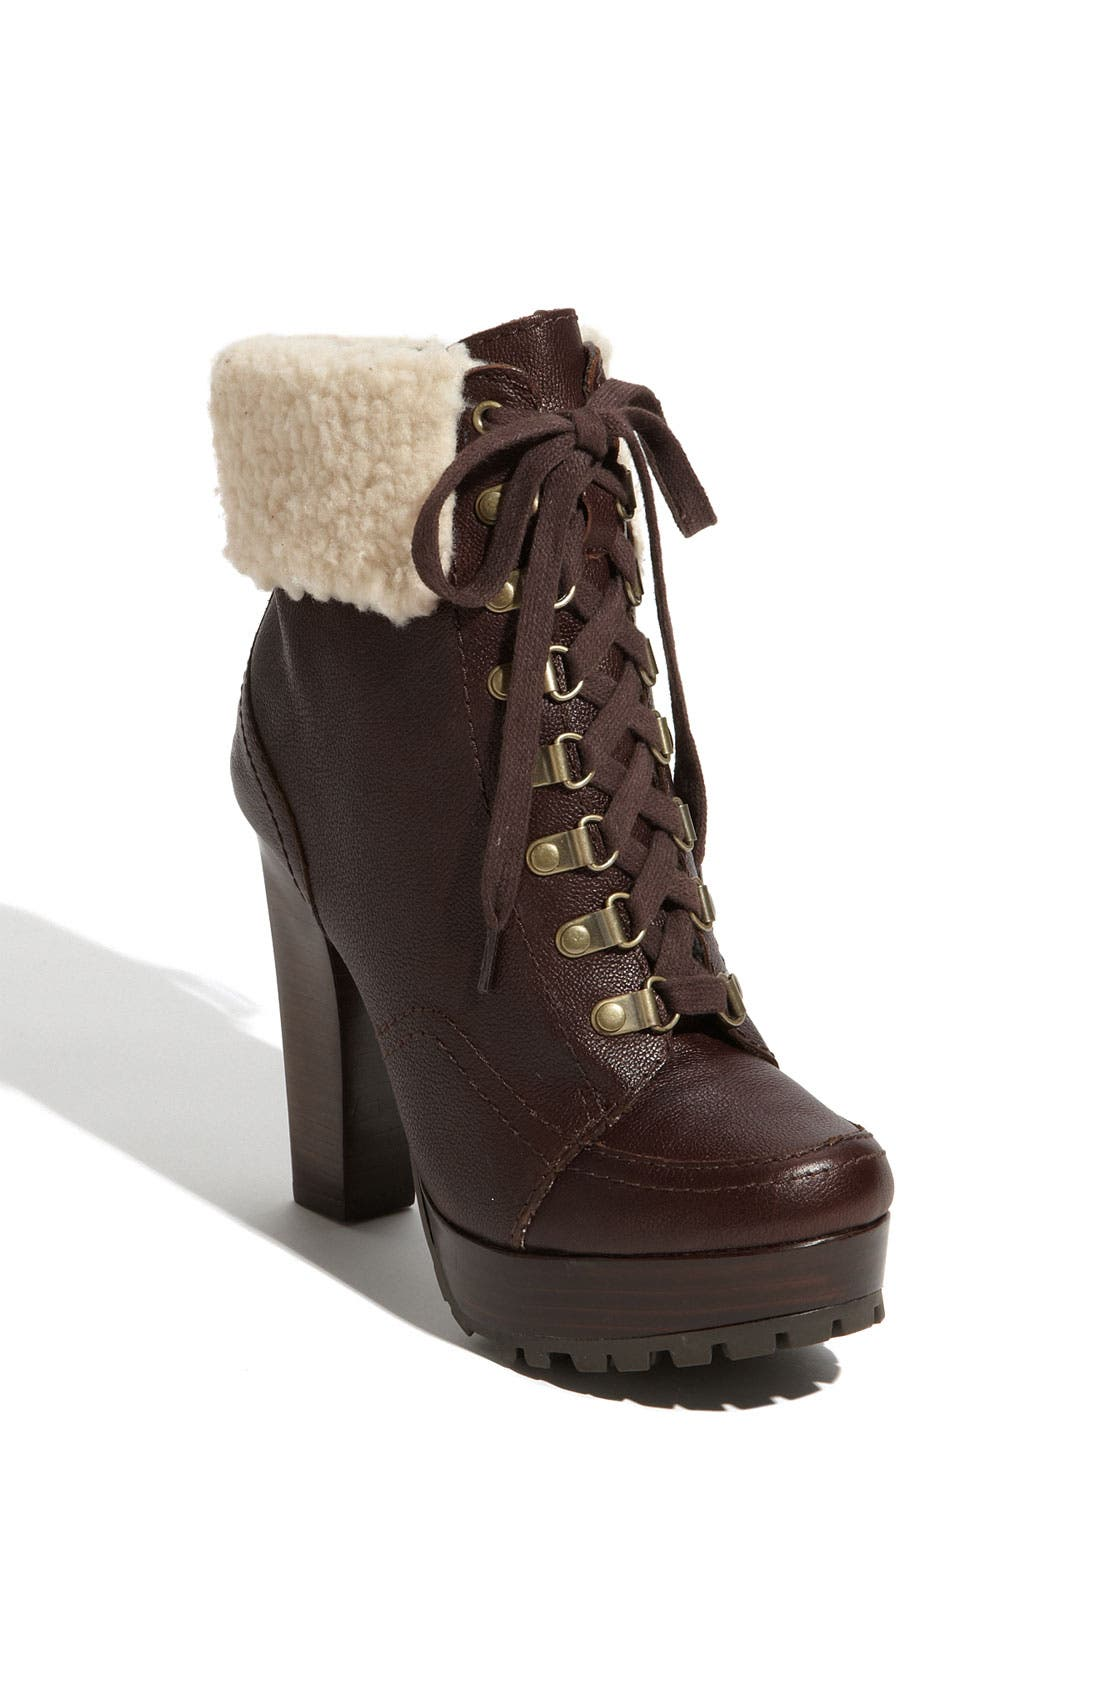 Alternate Image 1 Selected - BP. 'Search' Lace-Up Bootie